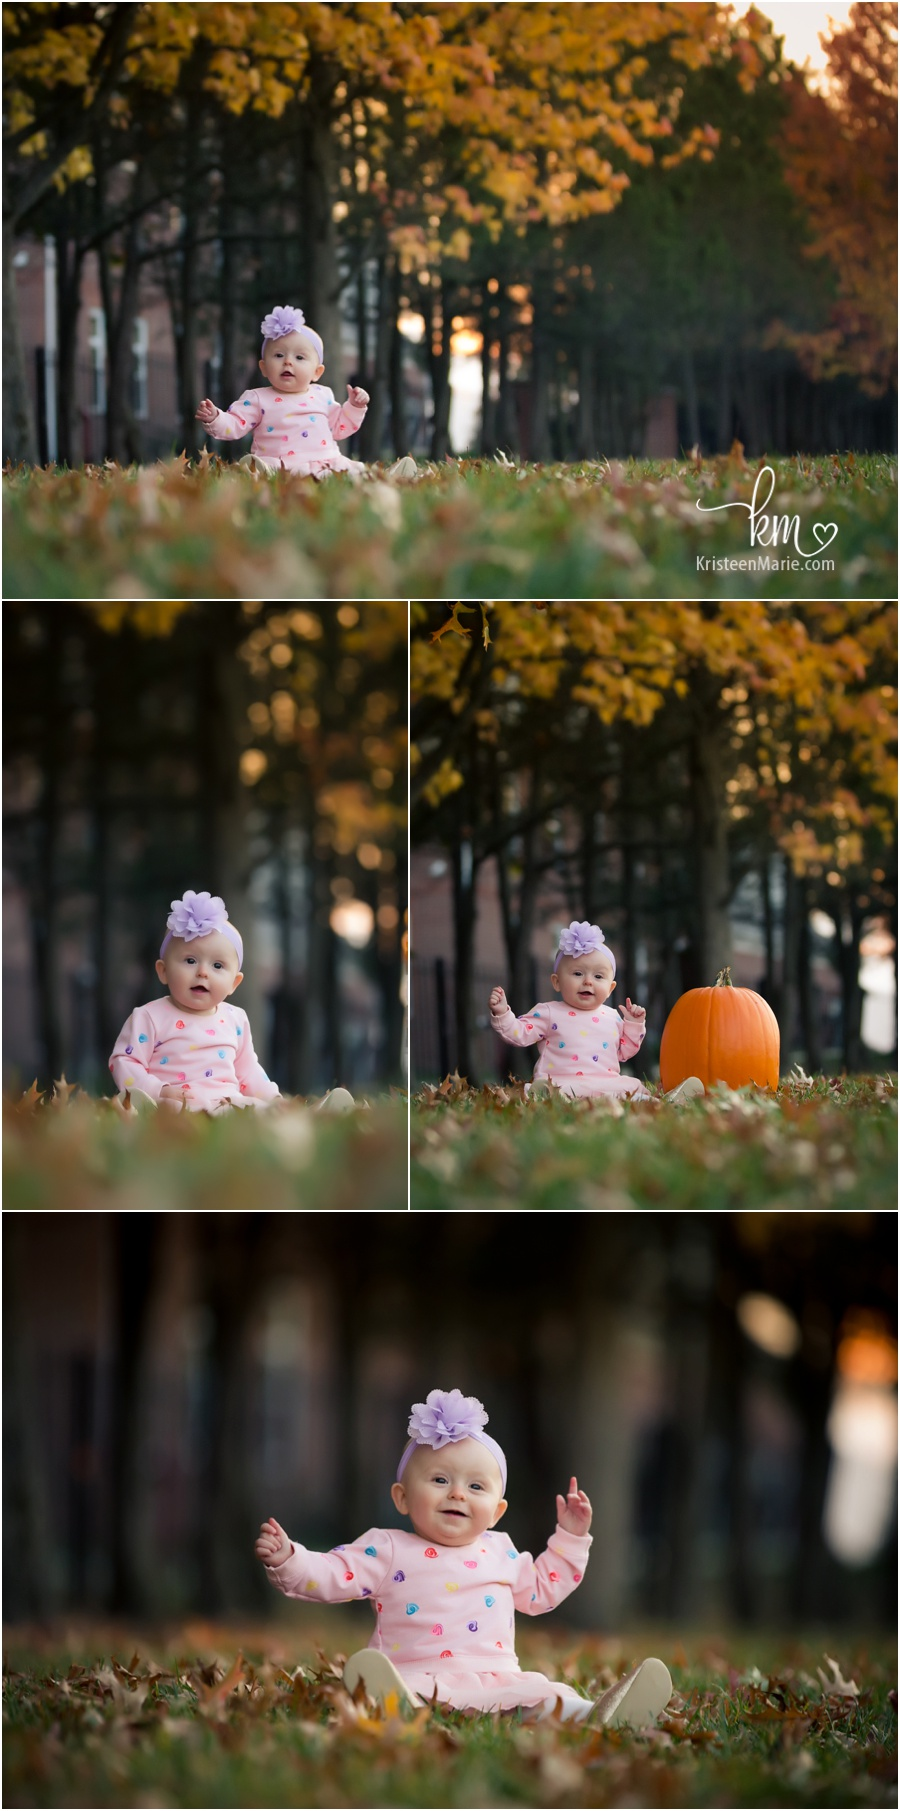 little girl with Pumpkin